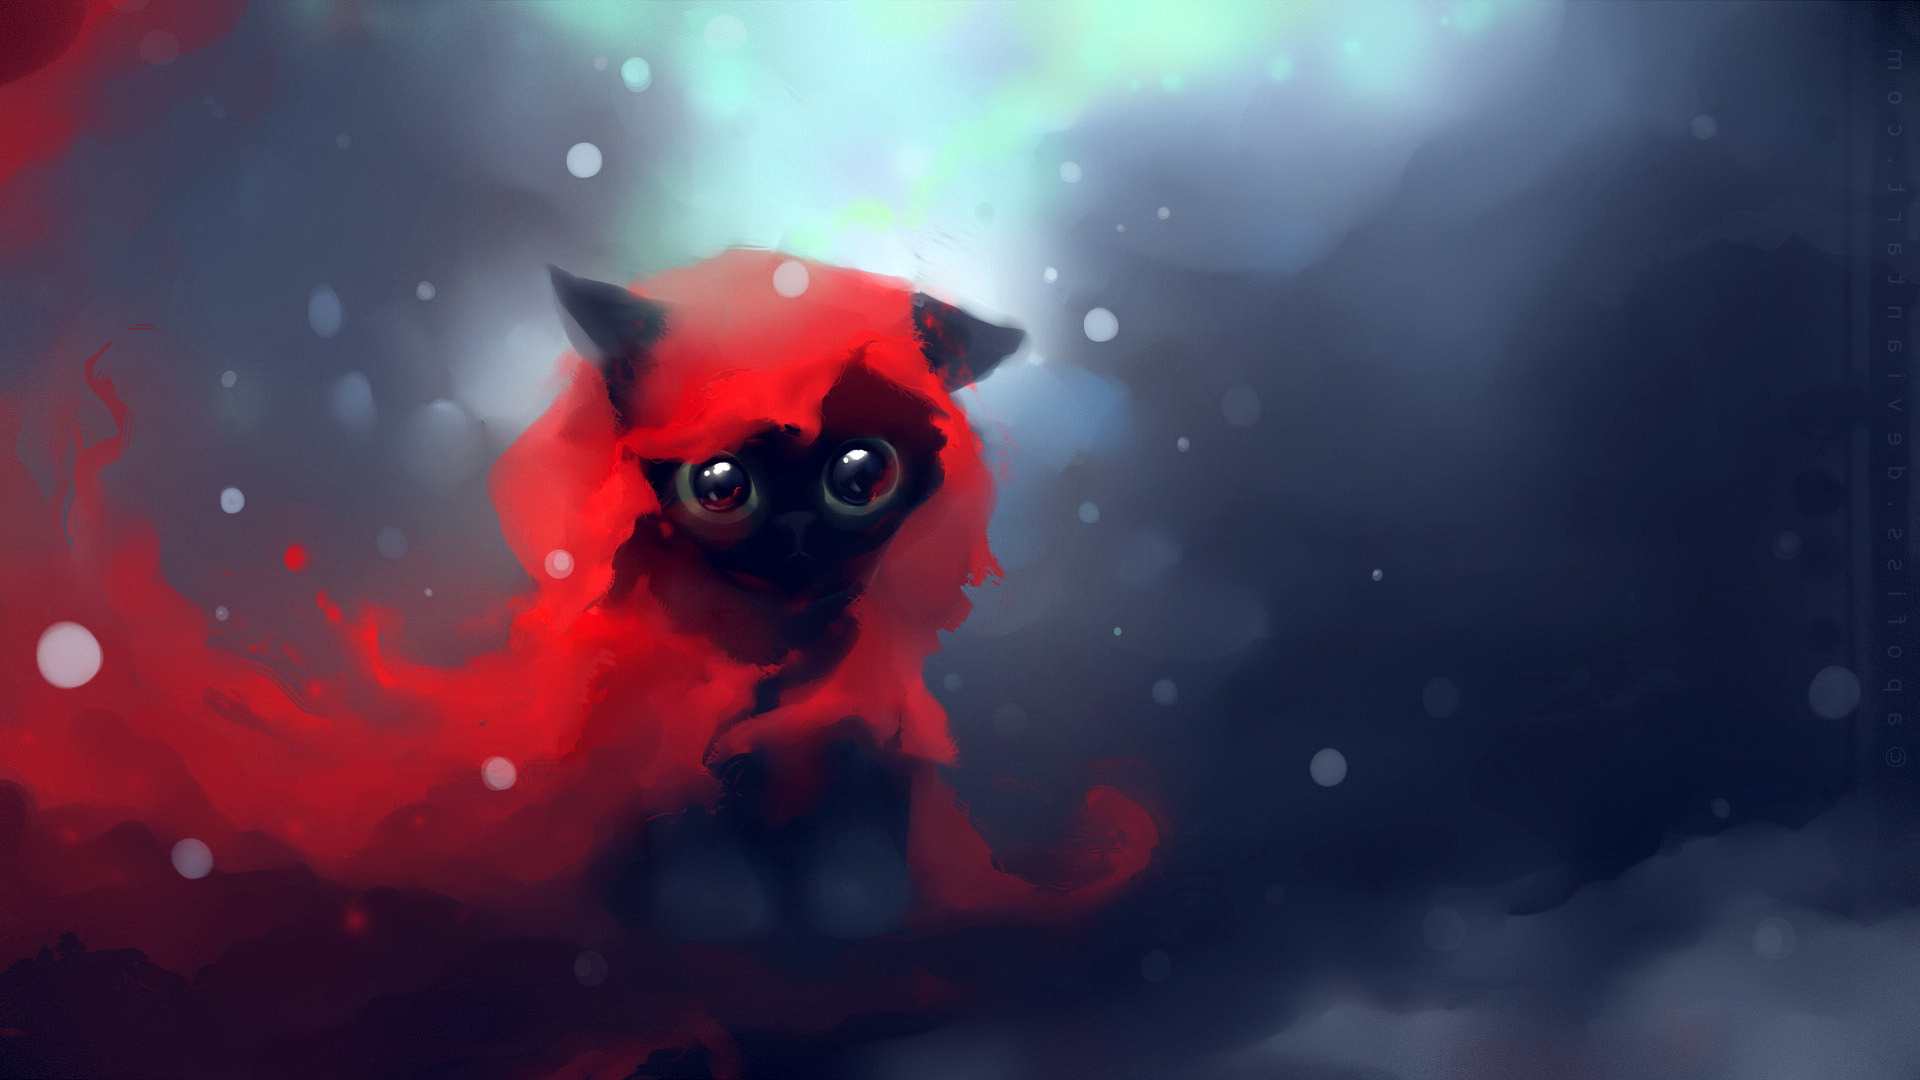 1920x1080 Download Wallpaper Cat Drawing Art Apofiss Full HD